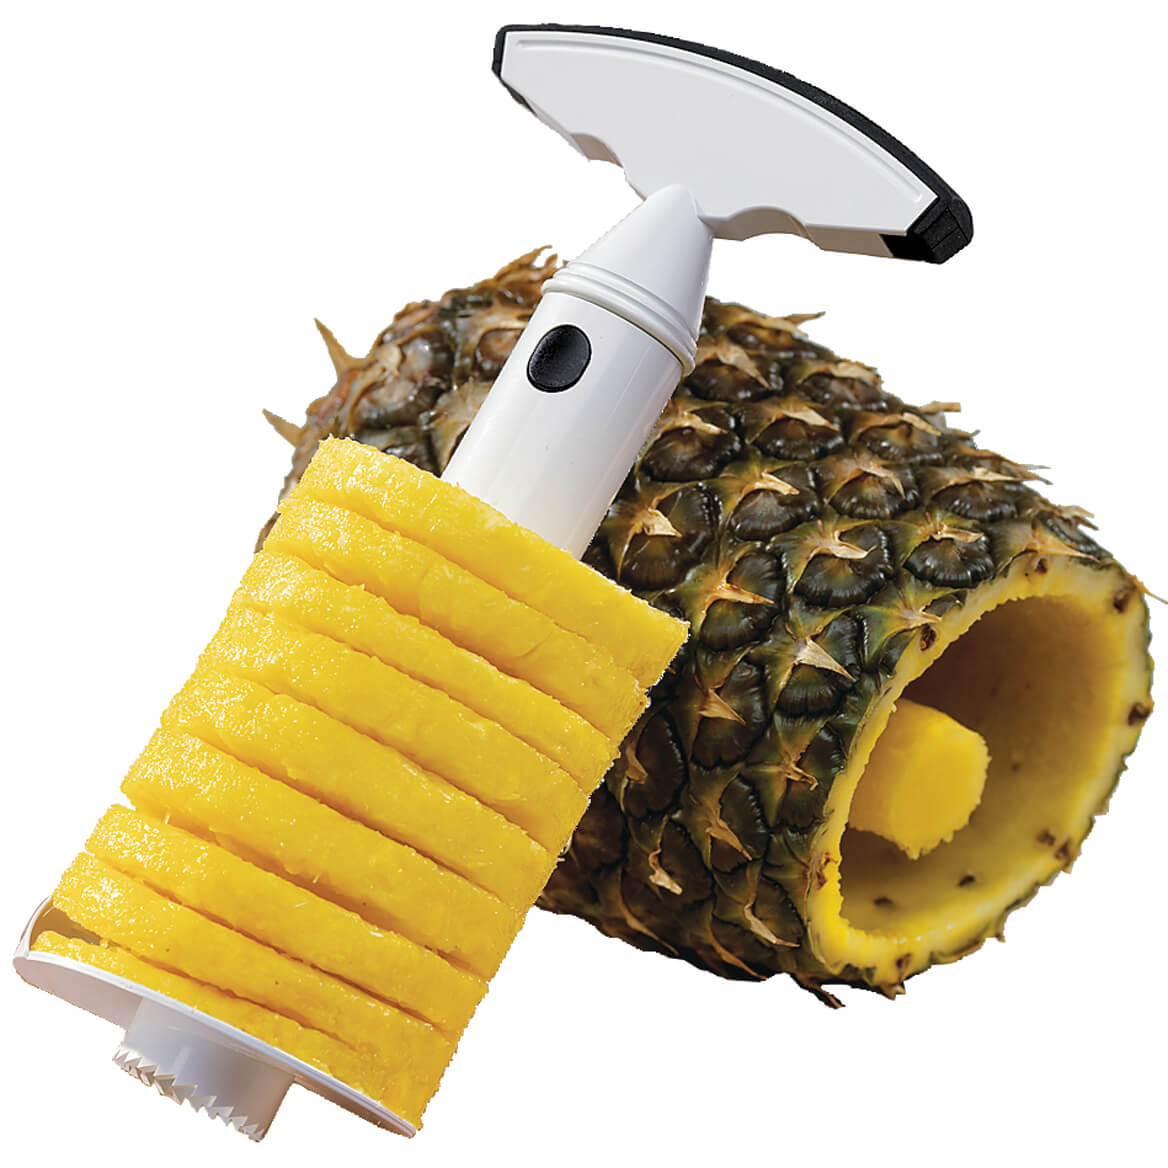 Pineapple Slicer Set of 2 Pcs.